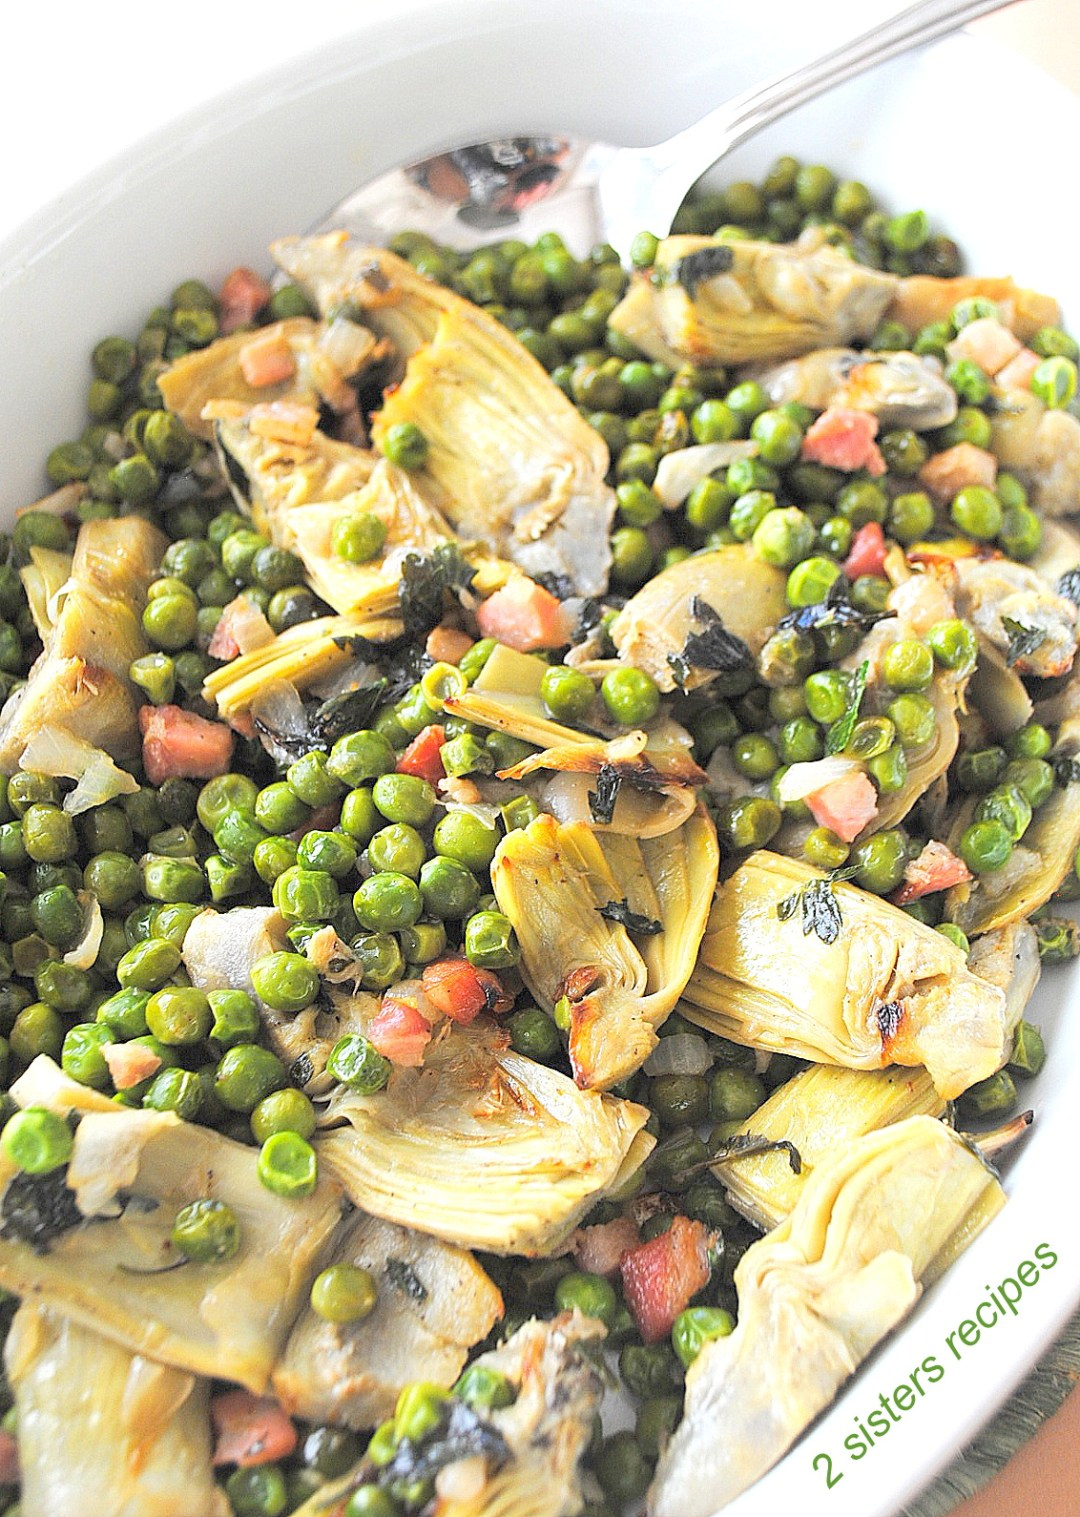 Baked Peas and Artichoke Hearts by 2sistersrecipes.com